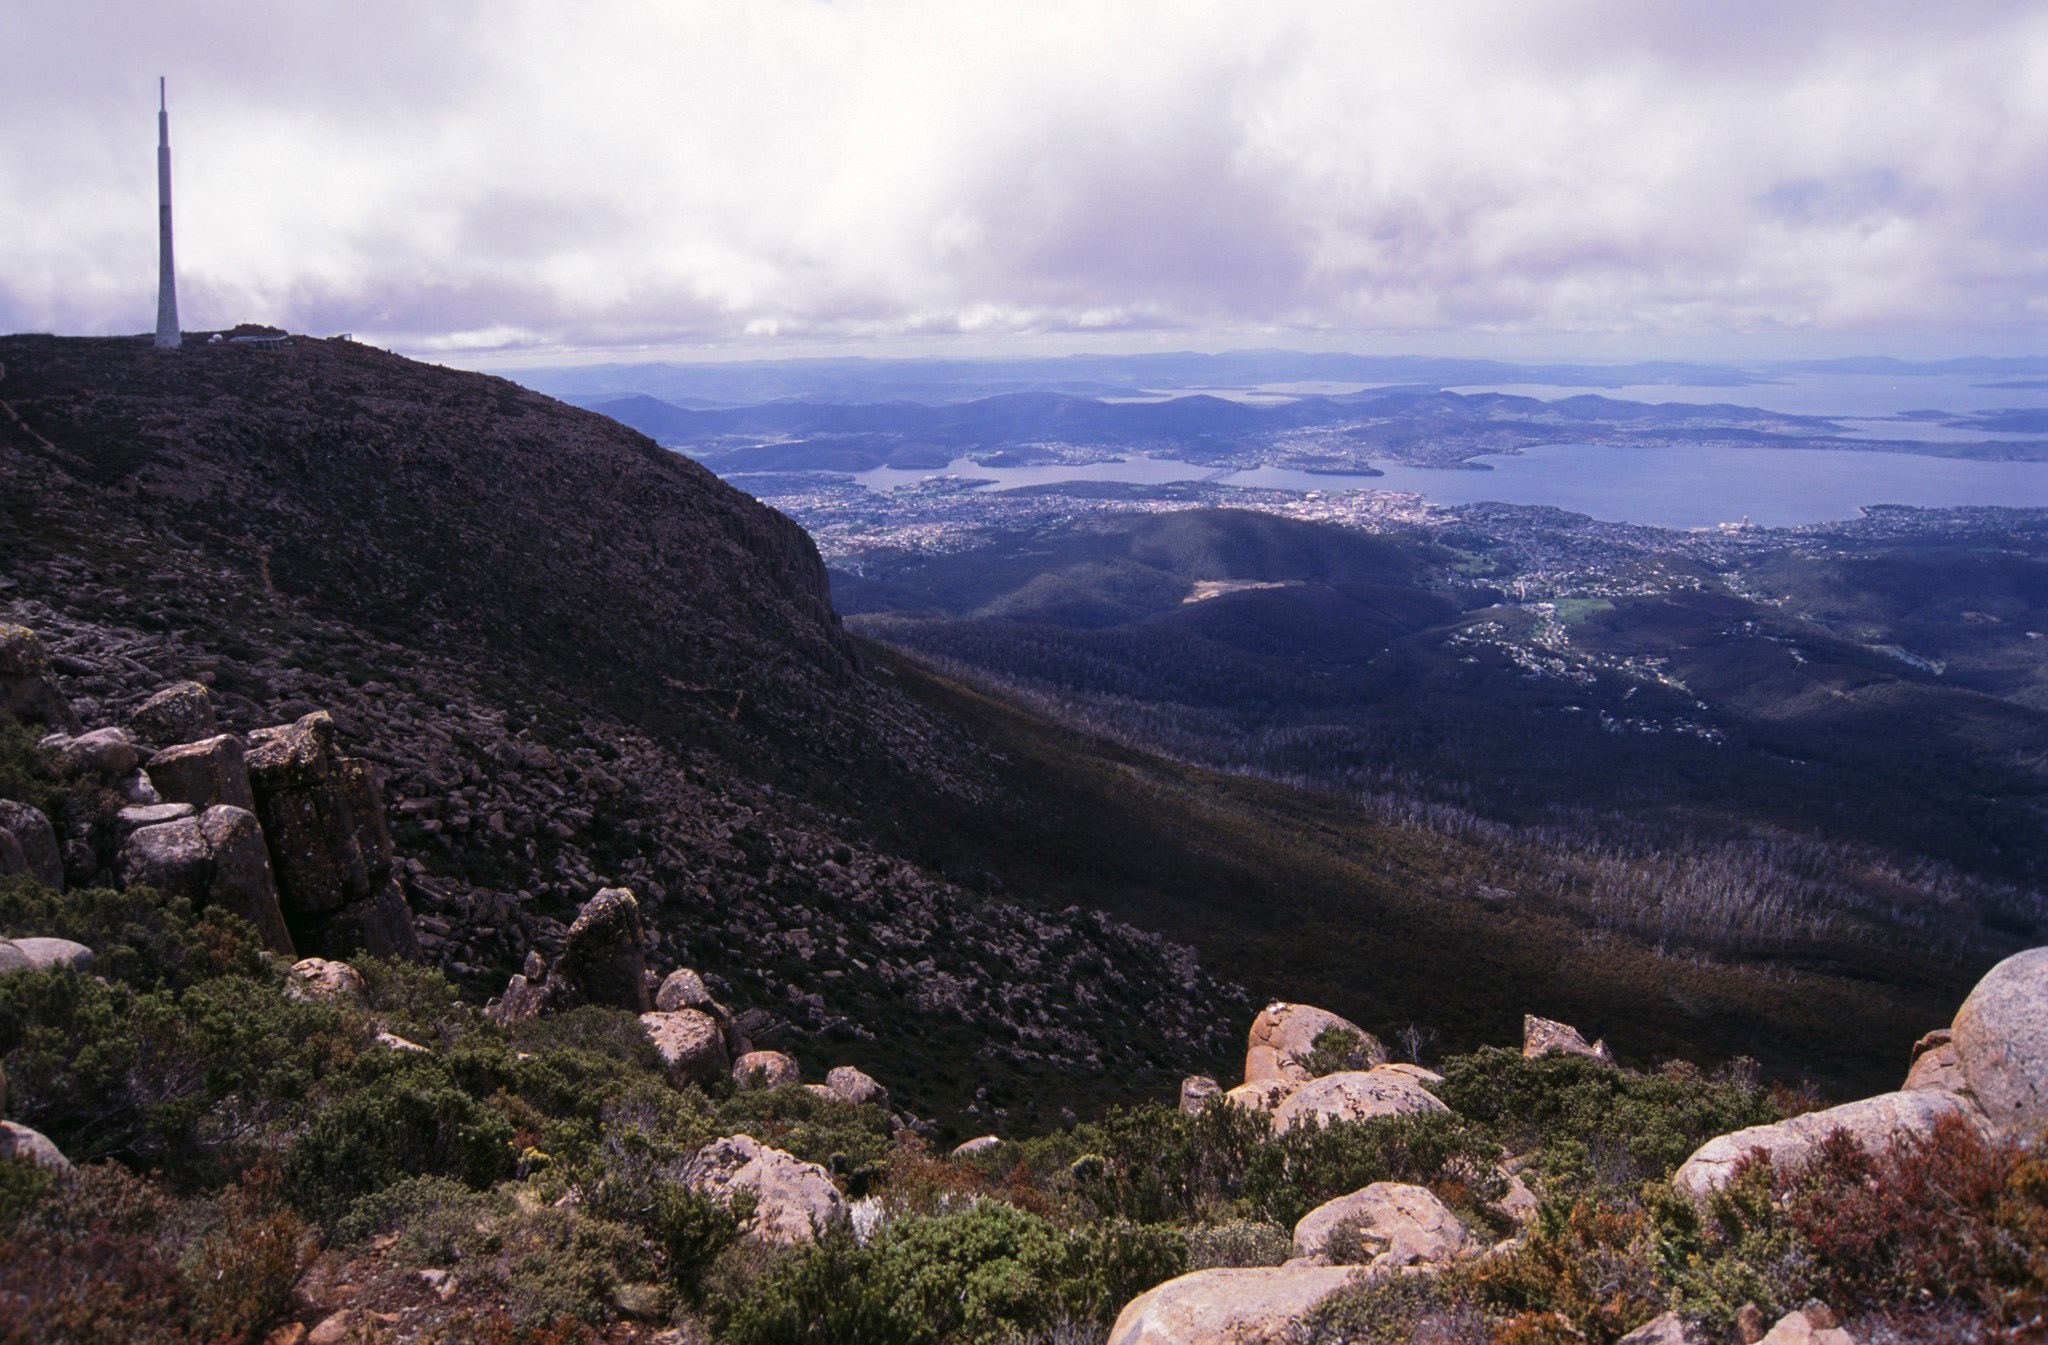 View from Mount Wellington, Tasmania over the surrounding countryside and Derwent Estuary with the city of Hobart